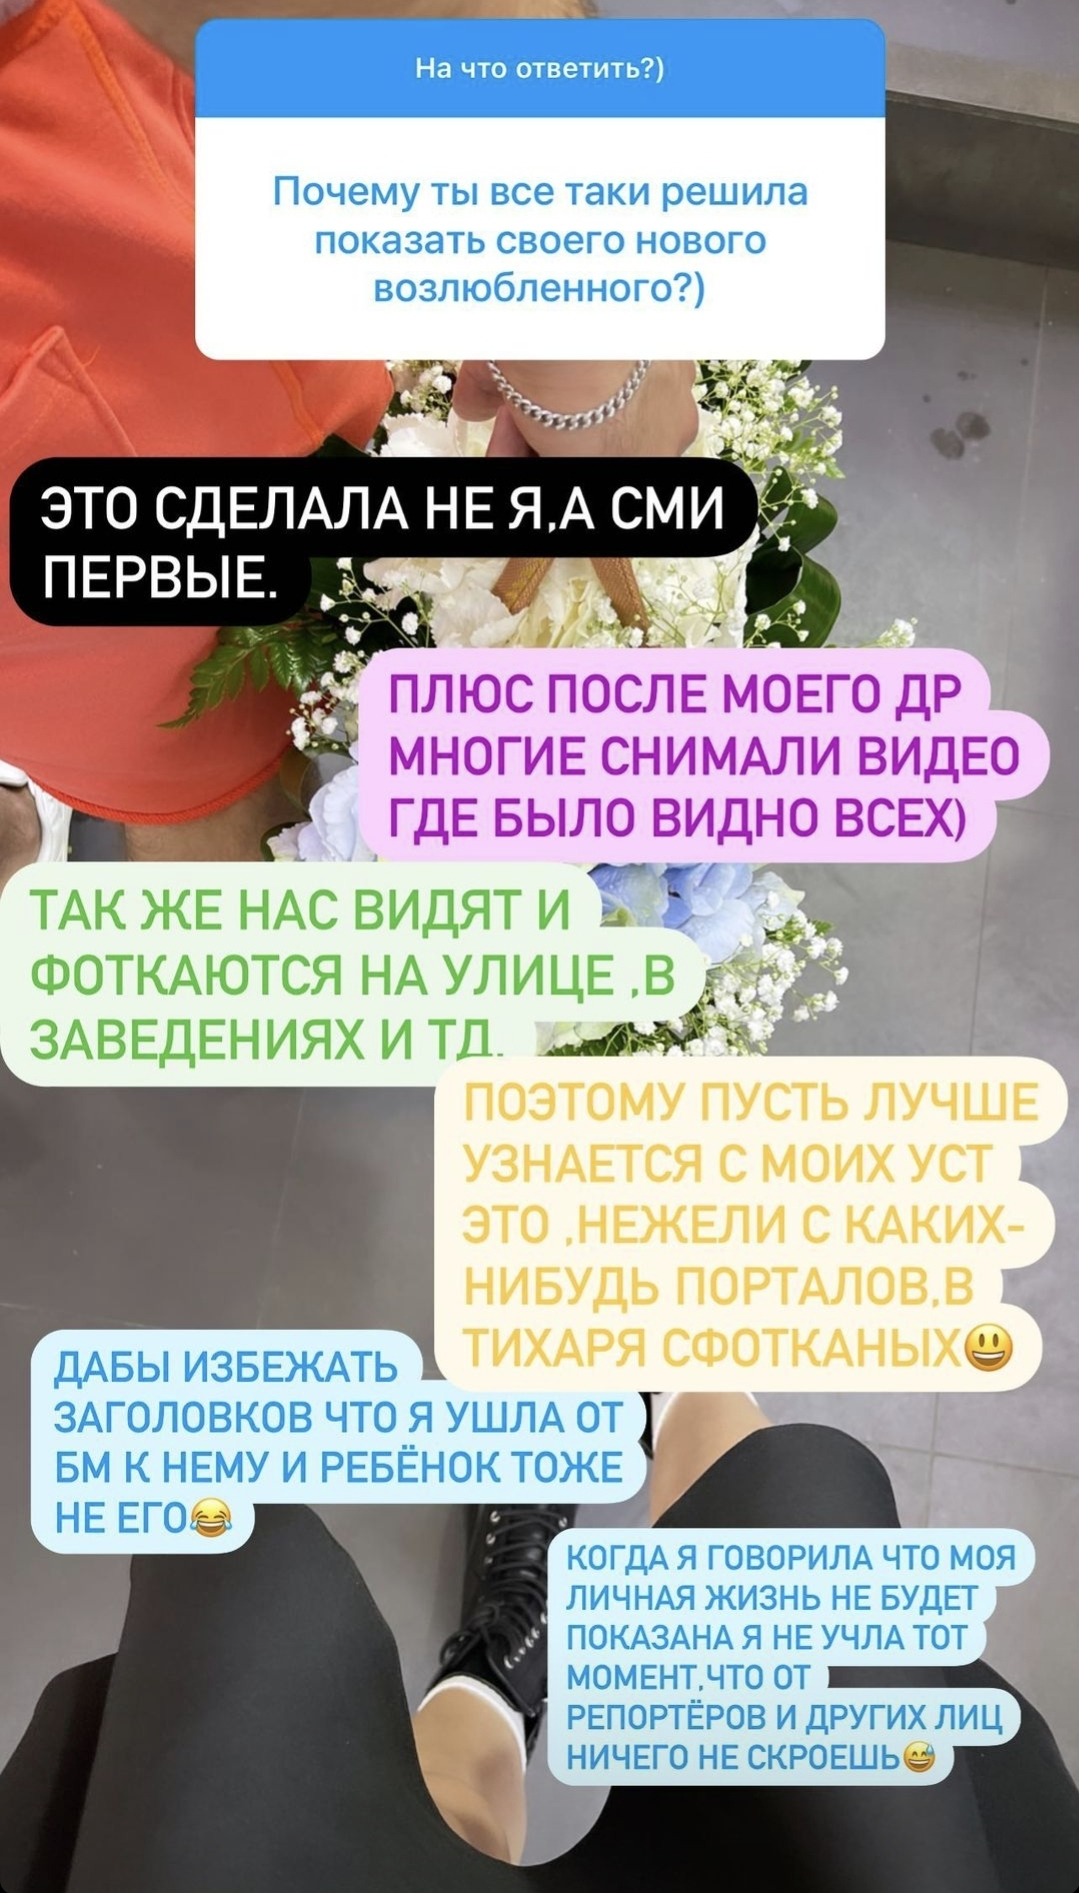 Divorced 1.5 months ago, Sasha Kabaeva spoke about pregnancy and sex with a new lover